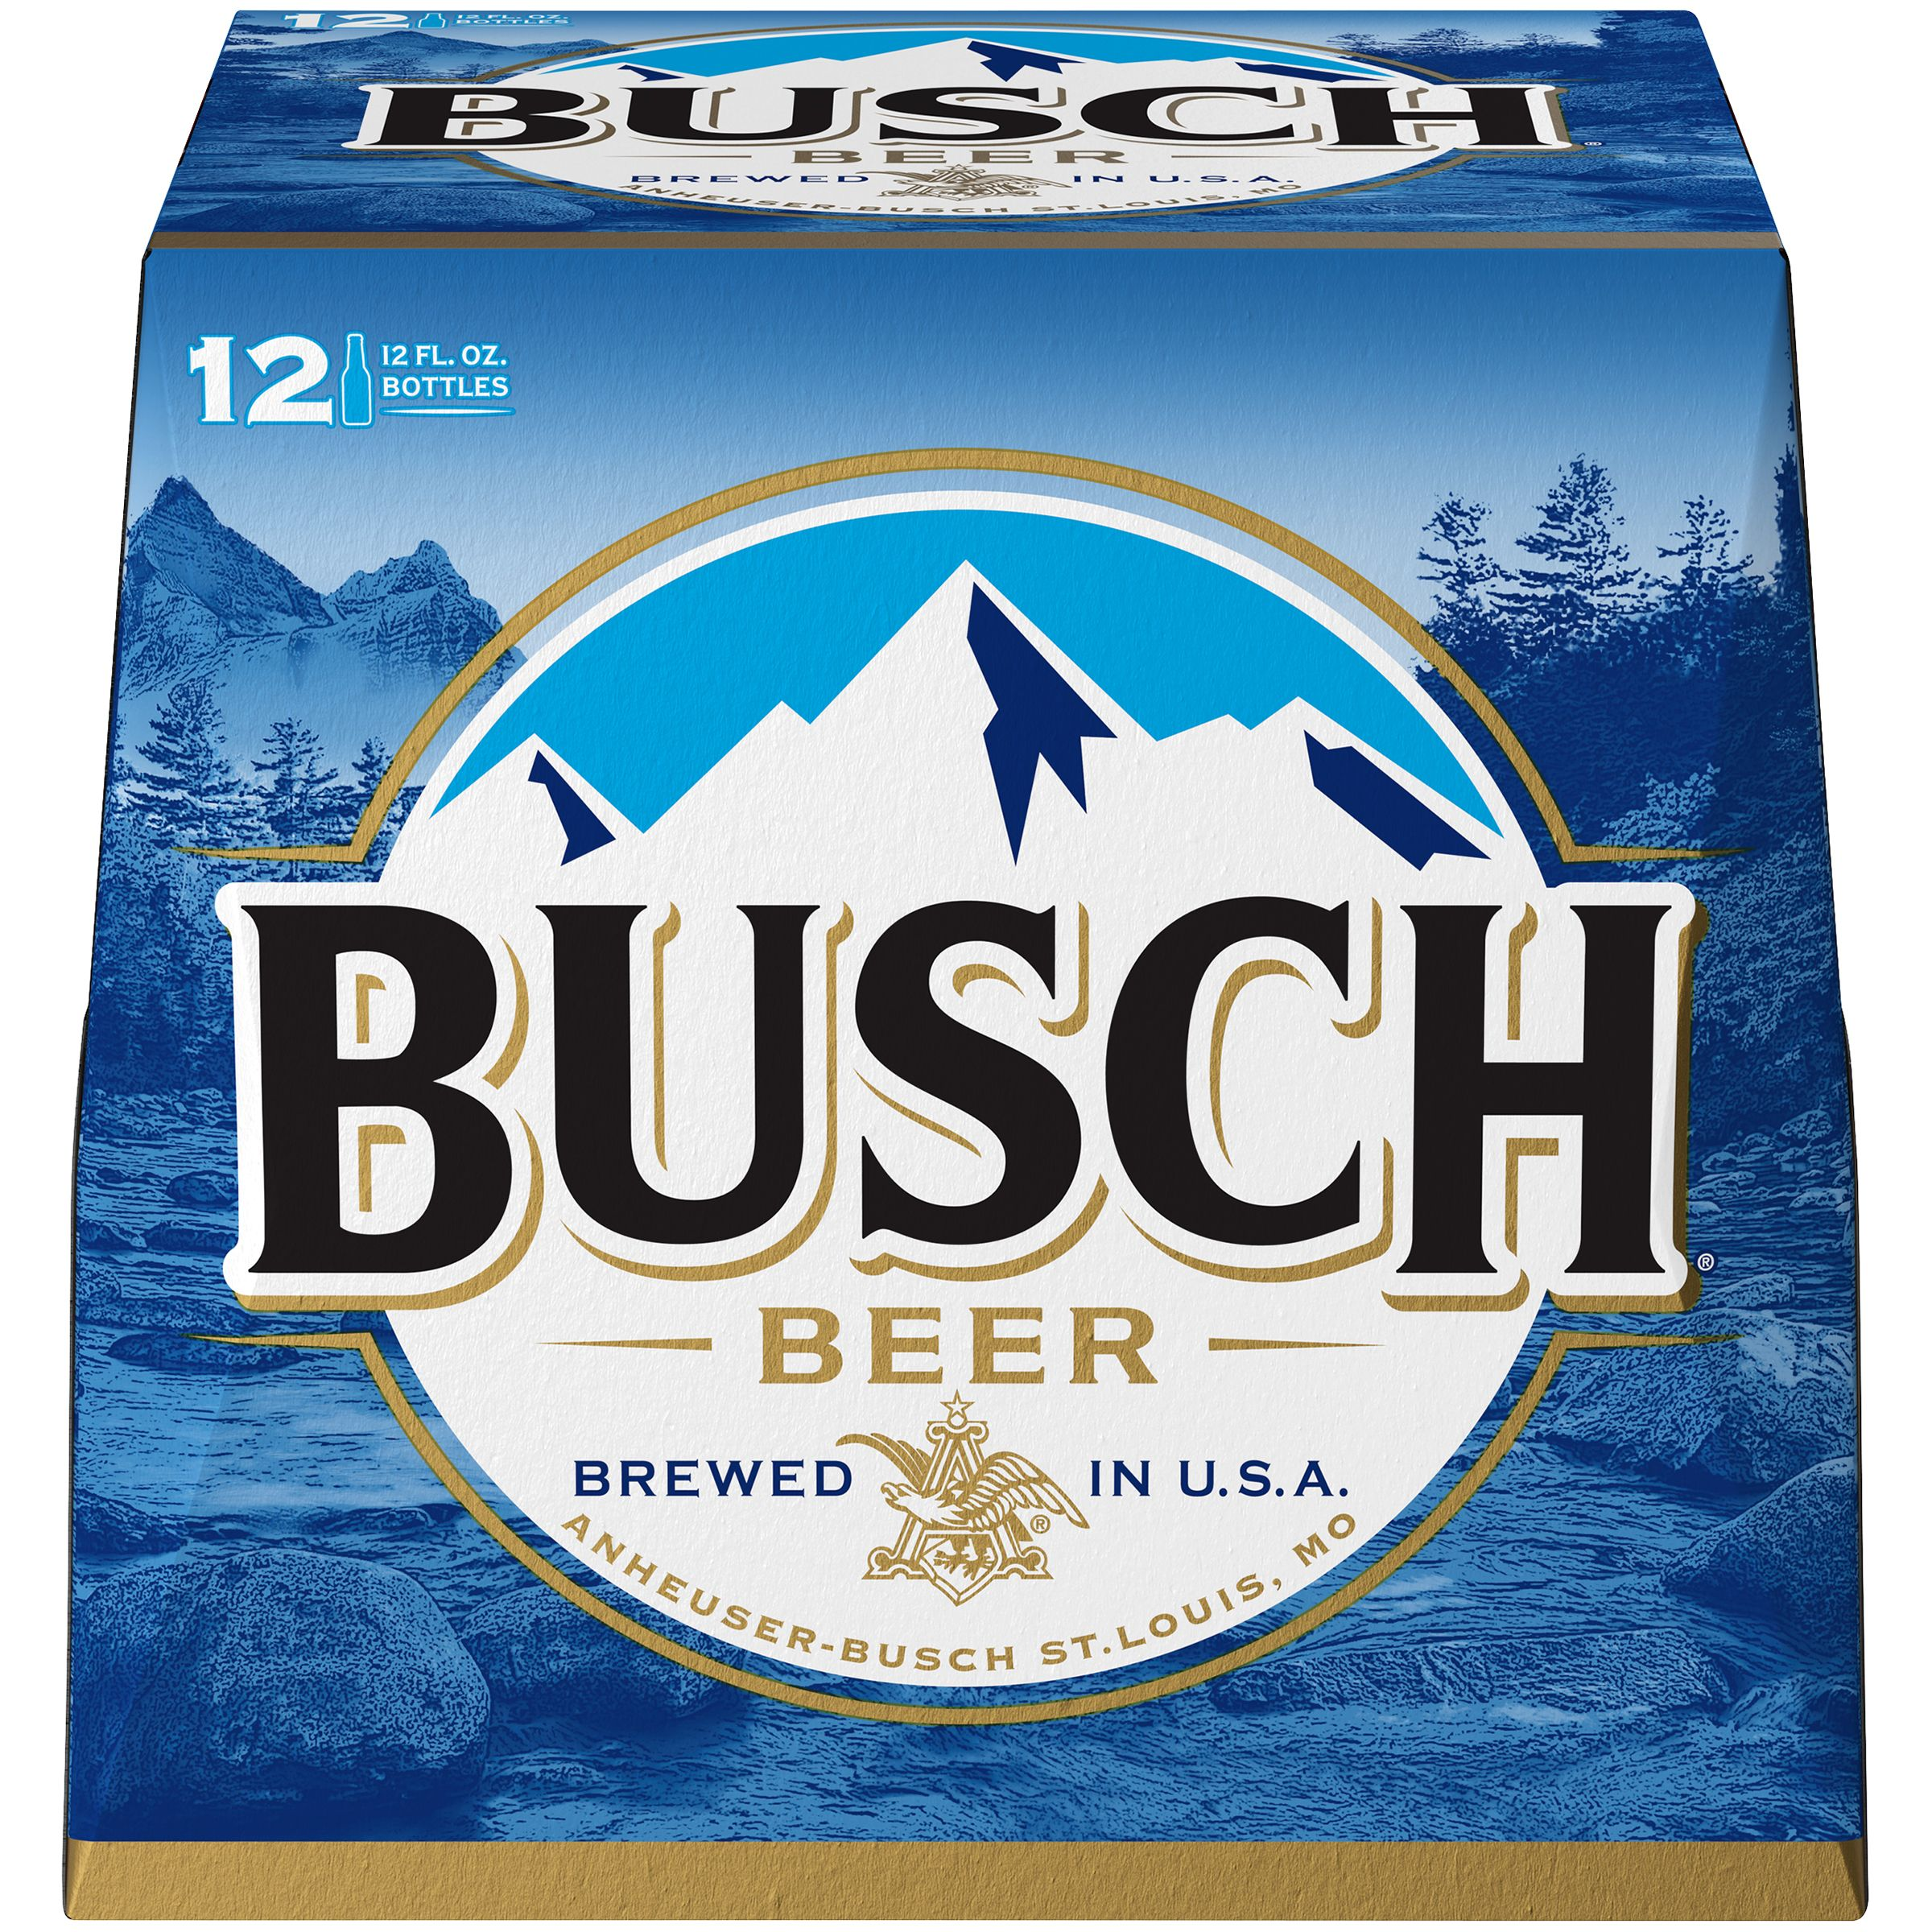 Busch Beer, 12 pk 12 fl. oz. Bottles